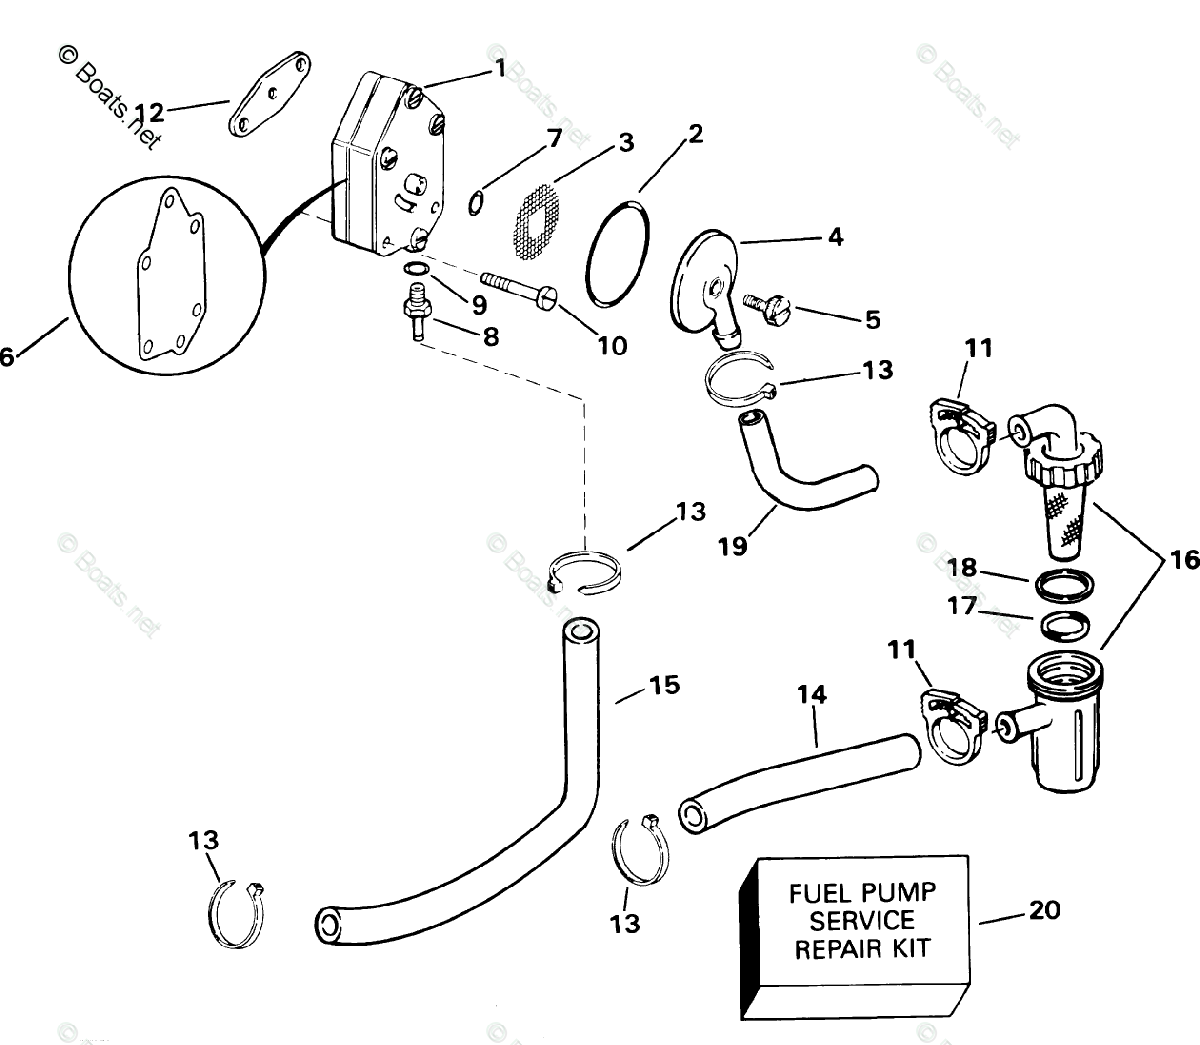 Johnson Outboard Parts By Hp 15hp Oem Parts Diagram For